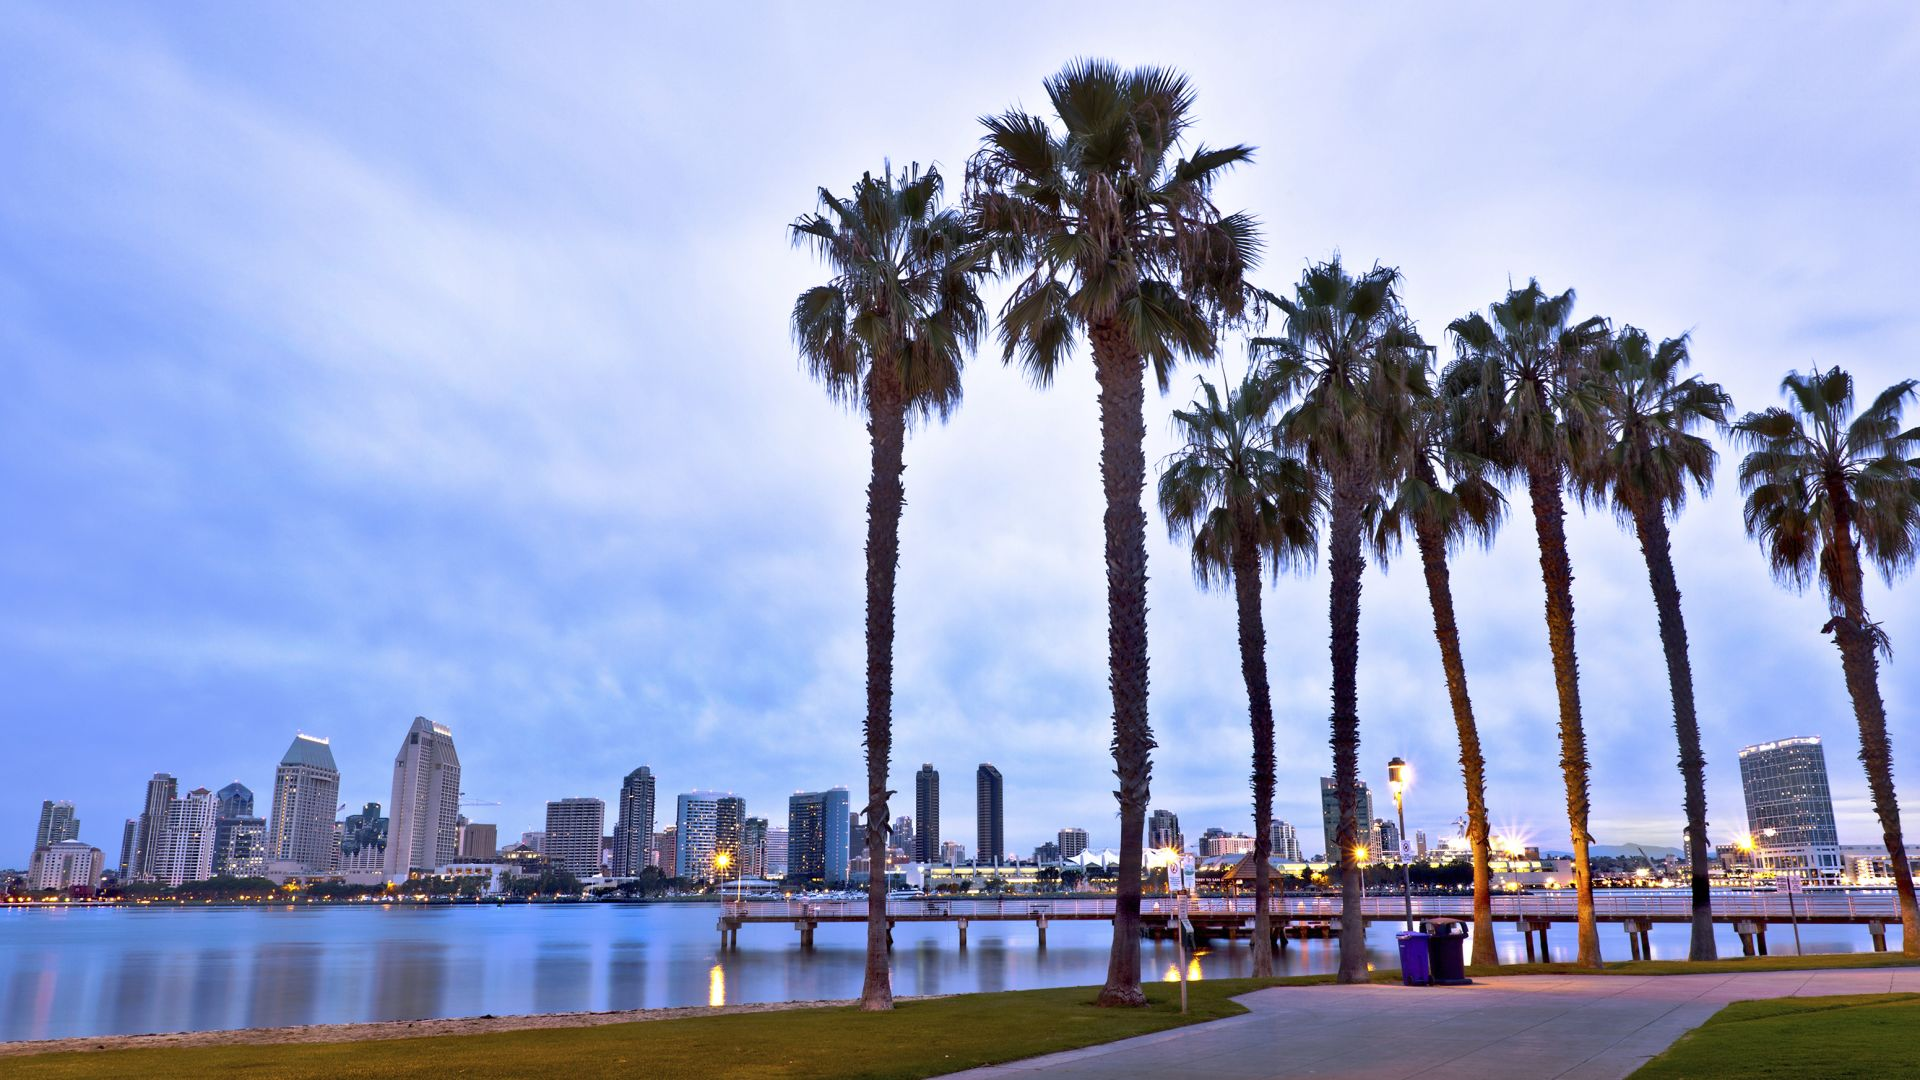 Centro de San Diego, California, y palmeras | Loews Coronado Bay Resort